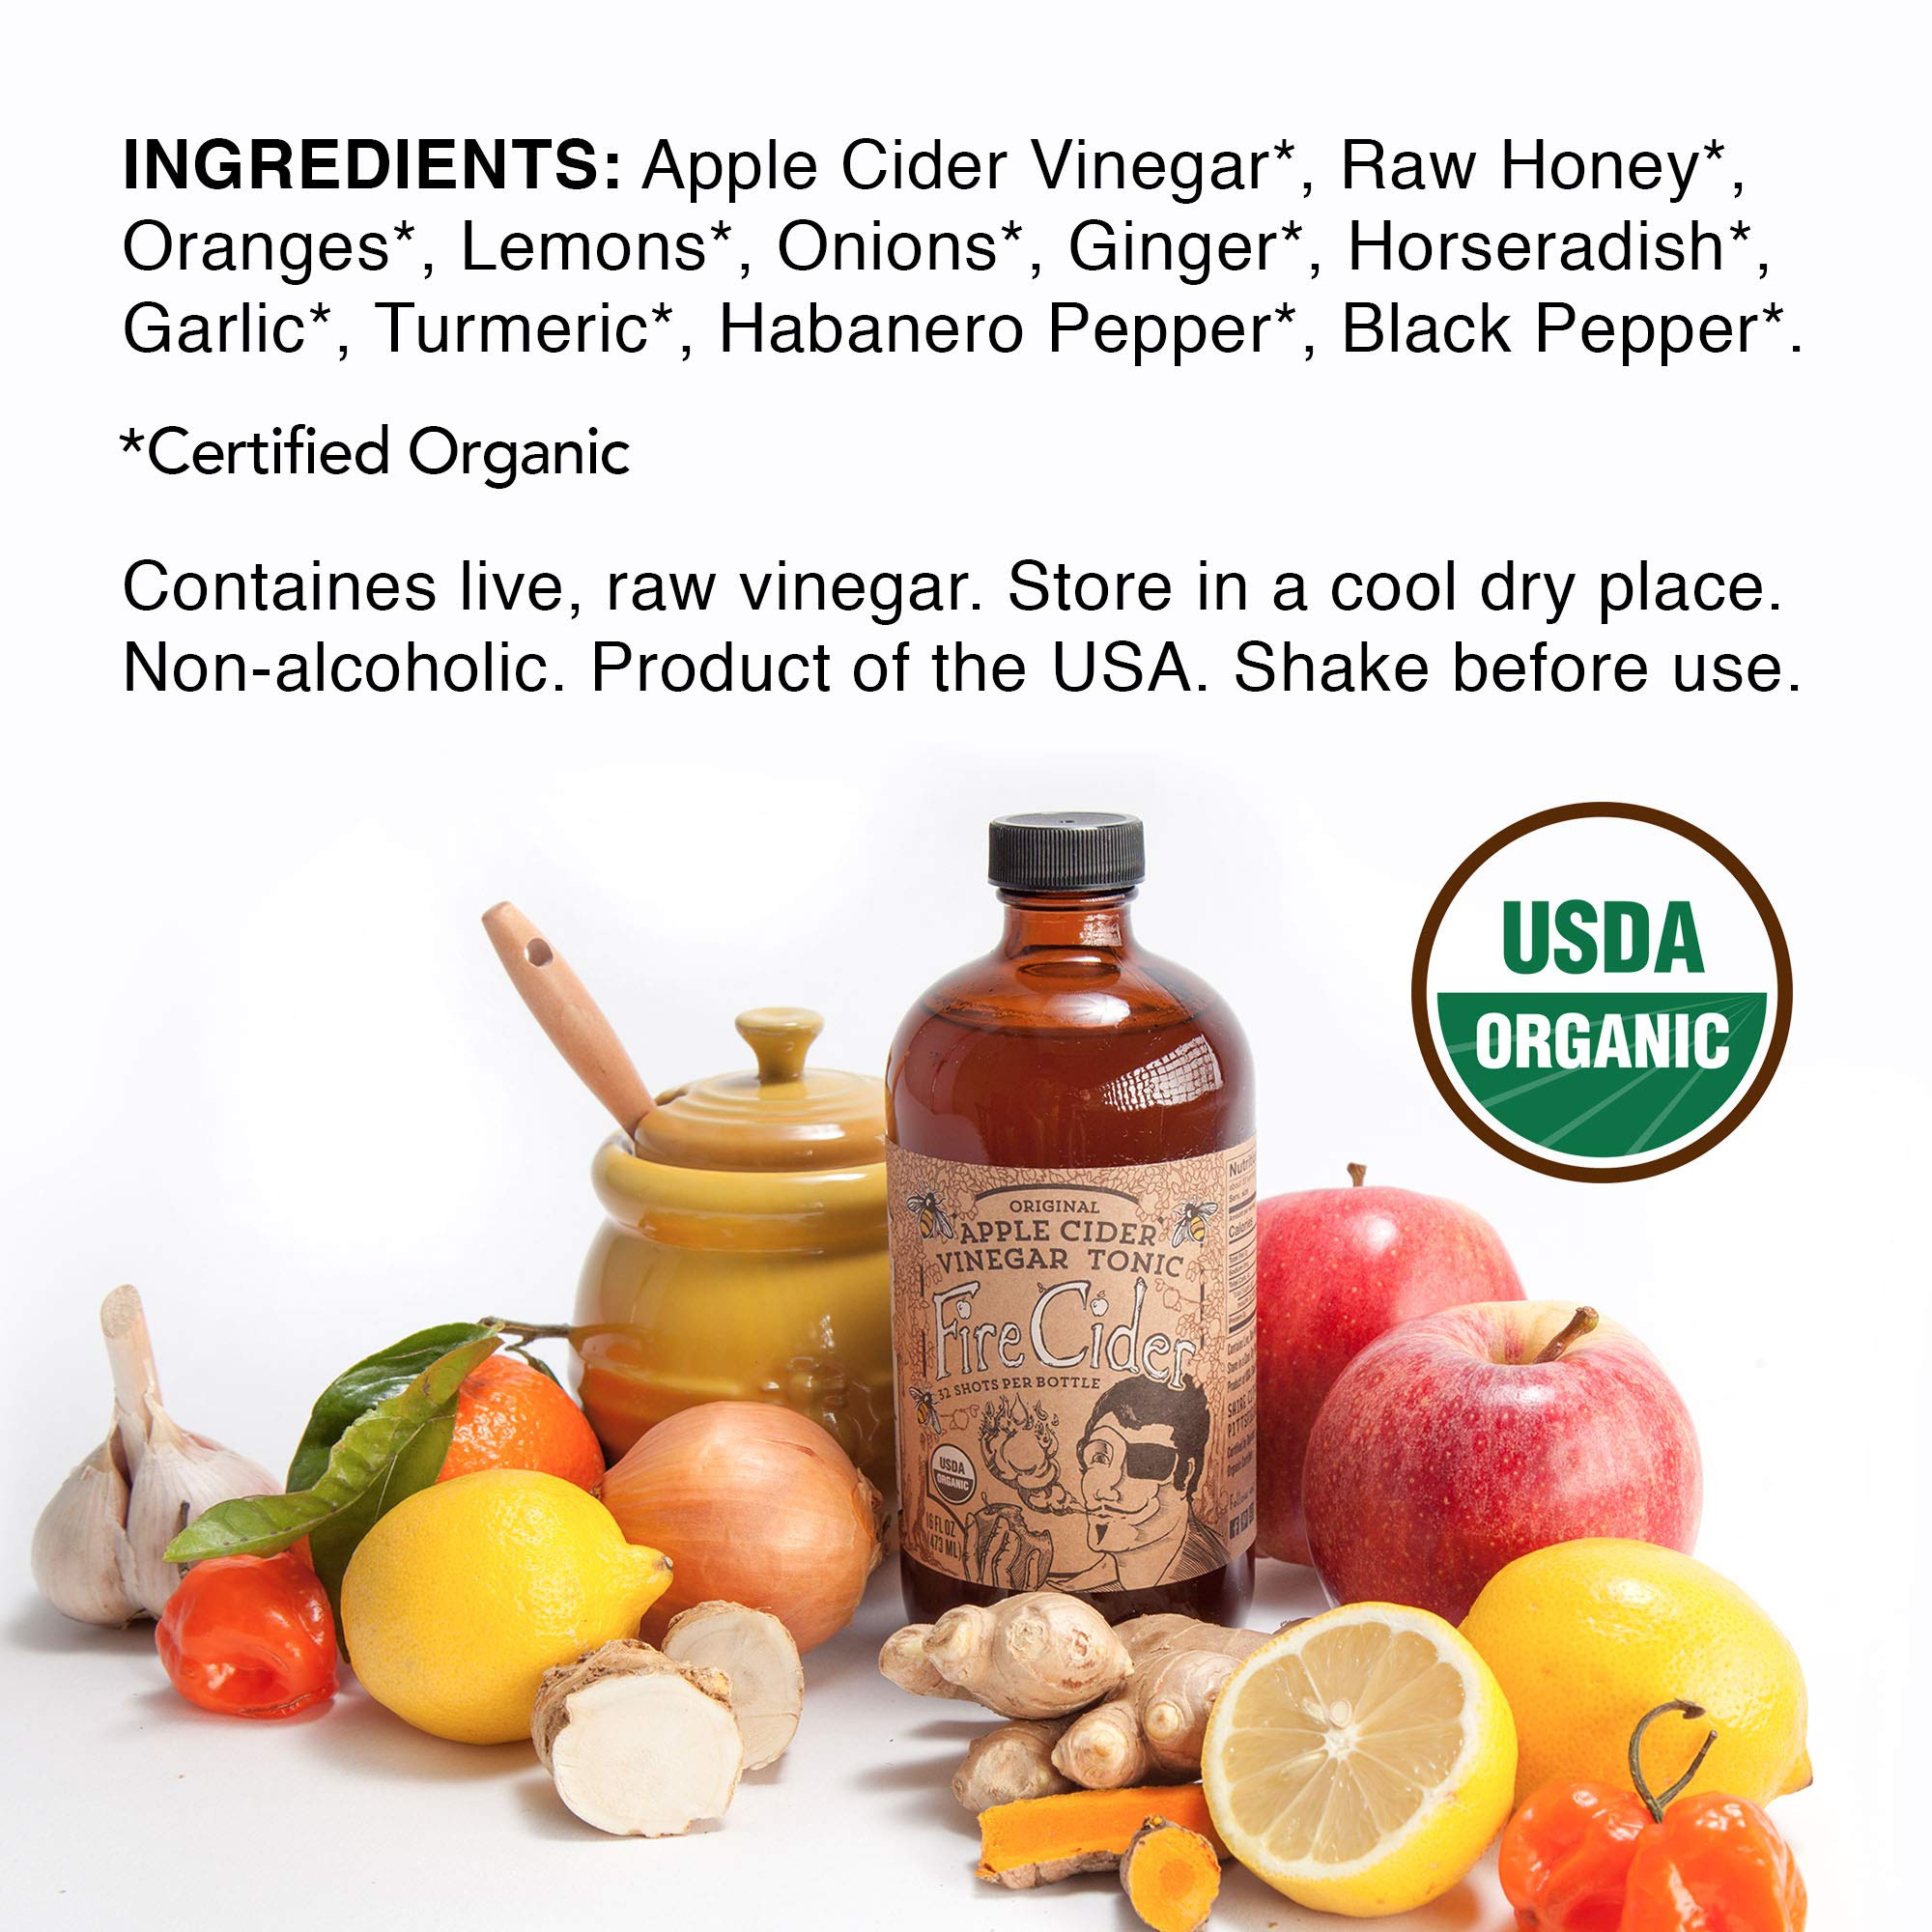 Fire Cider, Apple Cider Vinegar Tonic with Honey, Original Flavor, Pure & Raw, All Certified Organic Ingredients, Not Heat Processed, Not Pasteurized, Paleo, Keto, 128 Shots, 64 oz. by FIRE CIDER (Image #5)